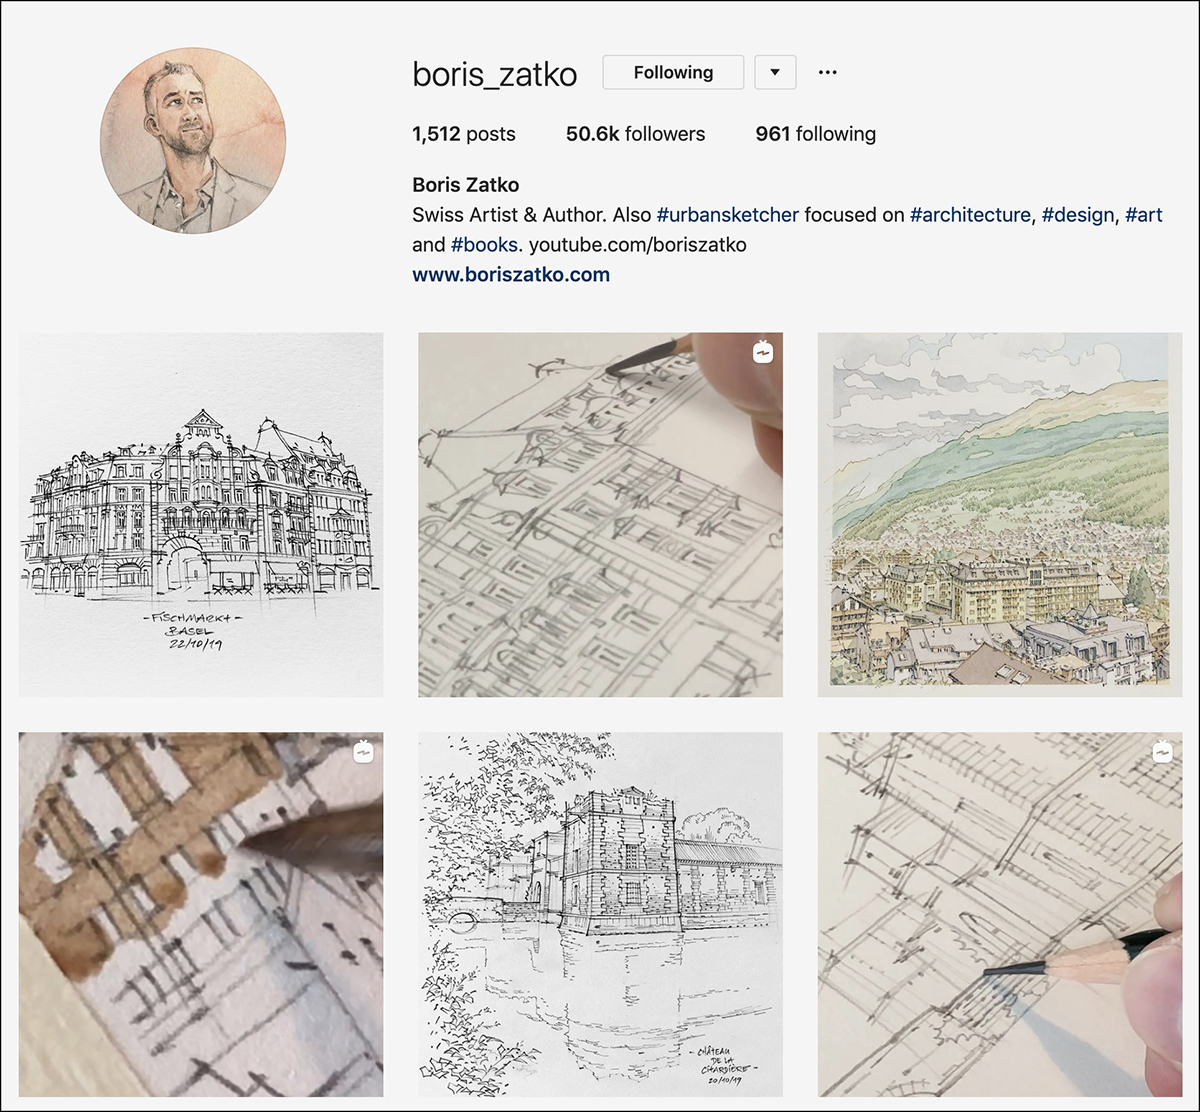 boris_zatko Instagram account - good for sketching